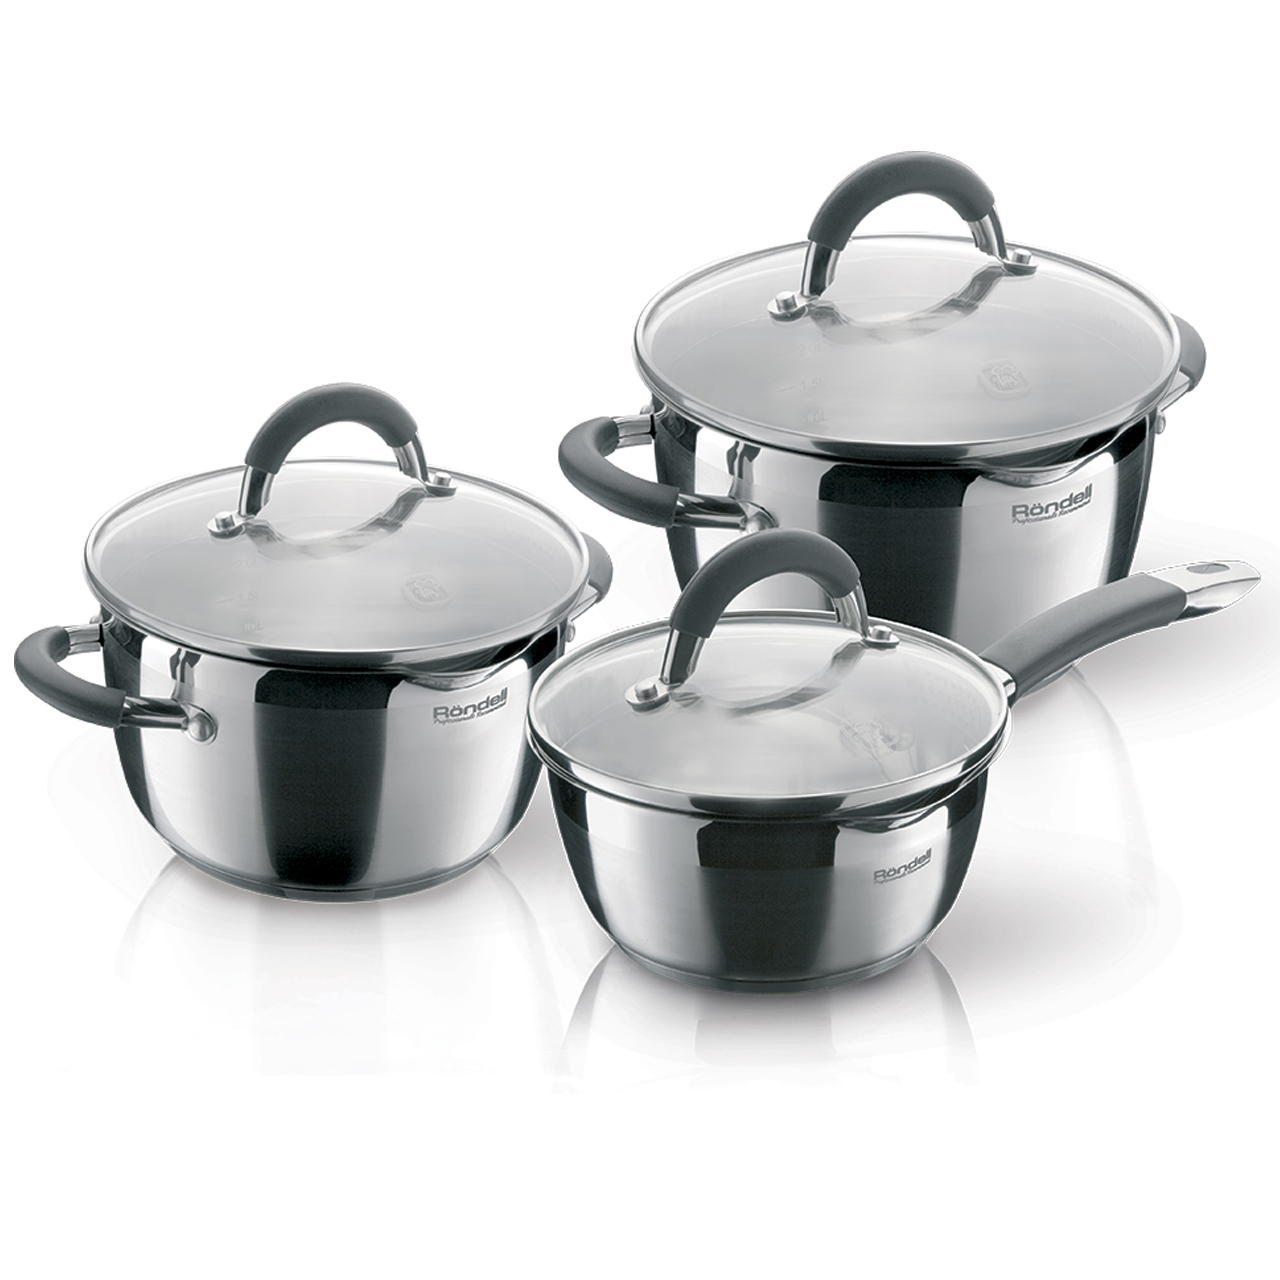 Set of dishes Rondell Flamme 6 items RDS-341 set of dishes rondell flamme 4 items rds 340